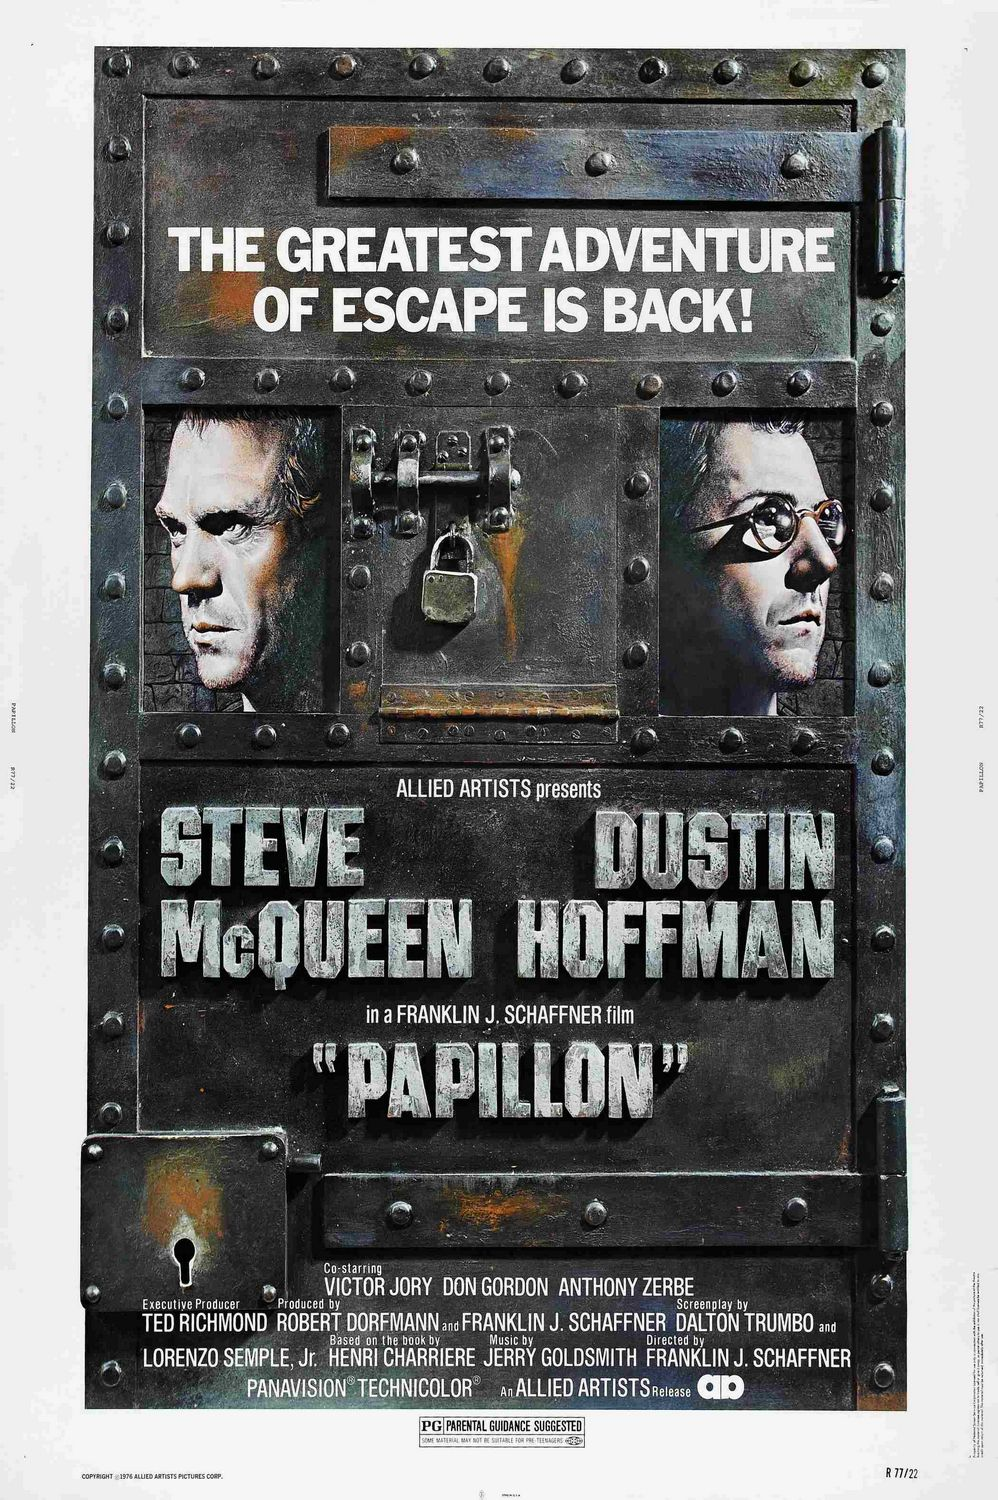 Papillon (1973) - La vita e la Fuga da un campo di Prigionia - For Papillon survival was not enough, he had to be Free - Cast: Dustin Hoffman, Steve McQueen, Victor Jory, Don Gordon, Anthony Zerbe - Classic Cult Film Poster